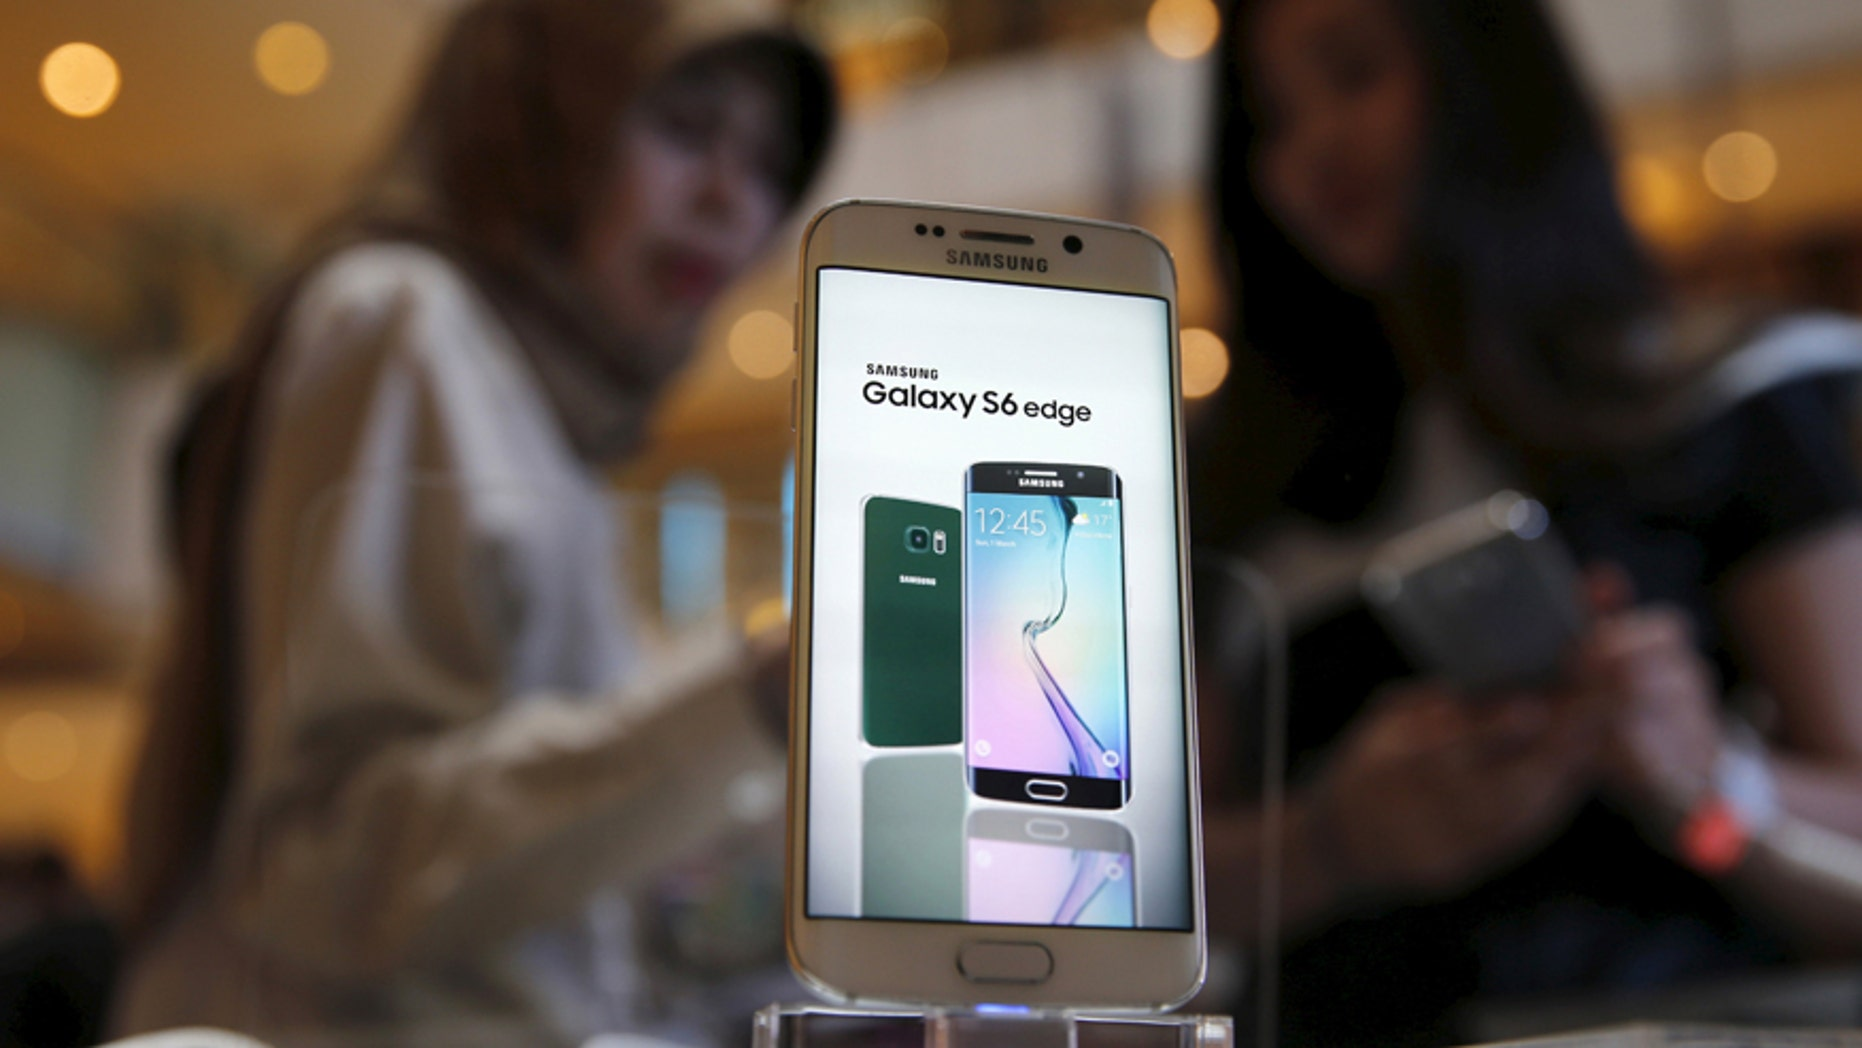 File photo - A Samsung Galaxy S6 edge is pictured while a salesperson (R) talks to a customer, as the Galaxy S6 and Galaxy S6 Edge go on sale to the public, at the Grand Indonesia mall in Jakarta, Indonesia, May 8, 2015.